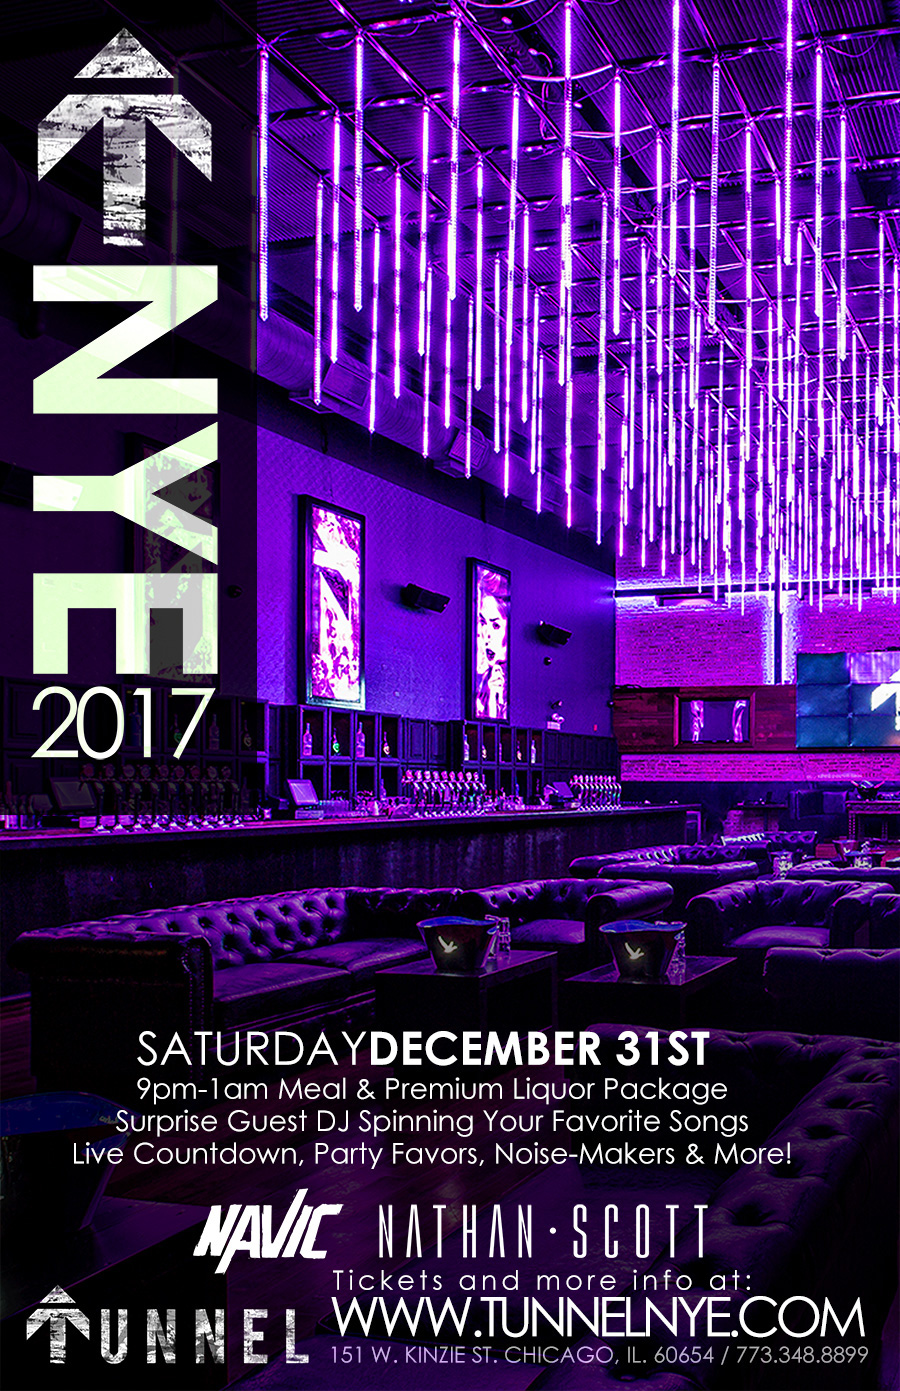 Tunnel New year's eve party - Join us at the newest club in Chicago for a surprise guest DJ spinning your favorite songs!